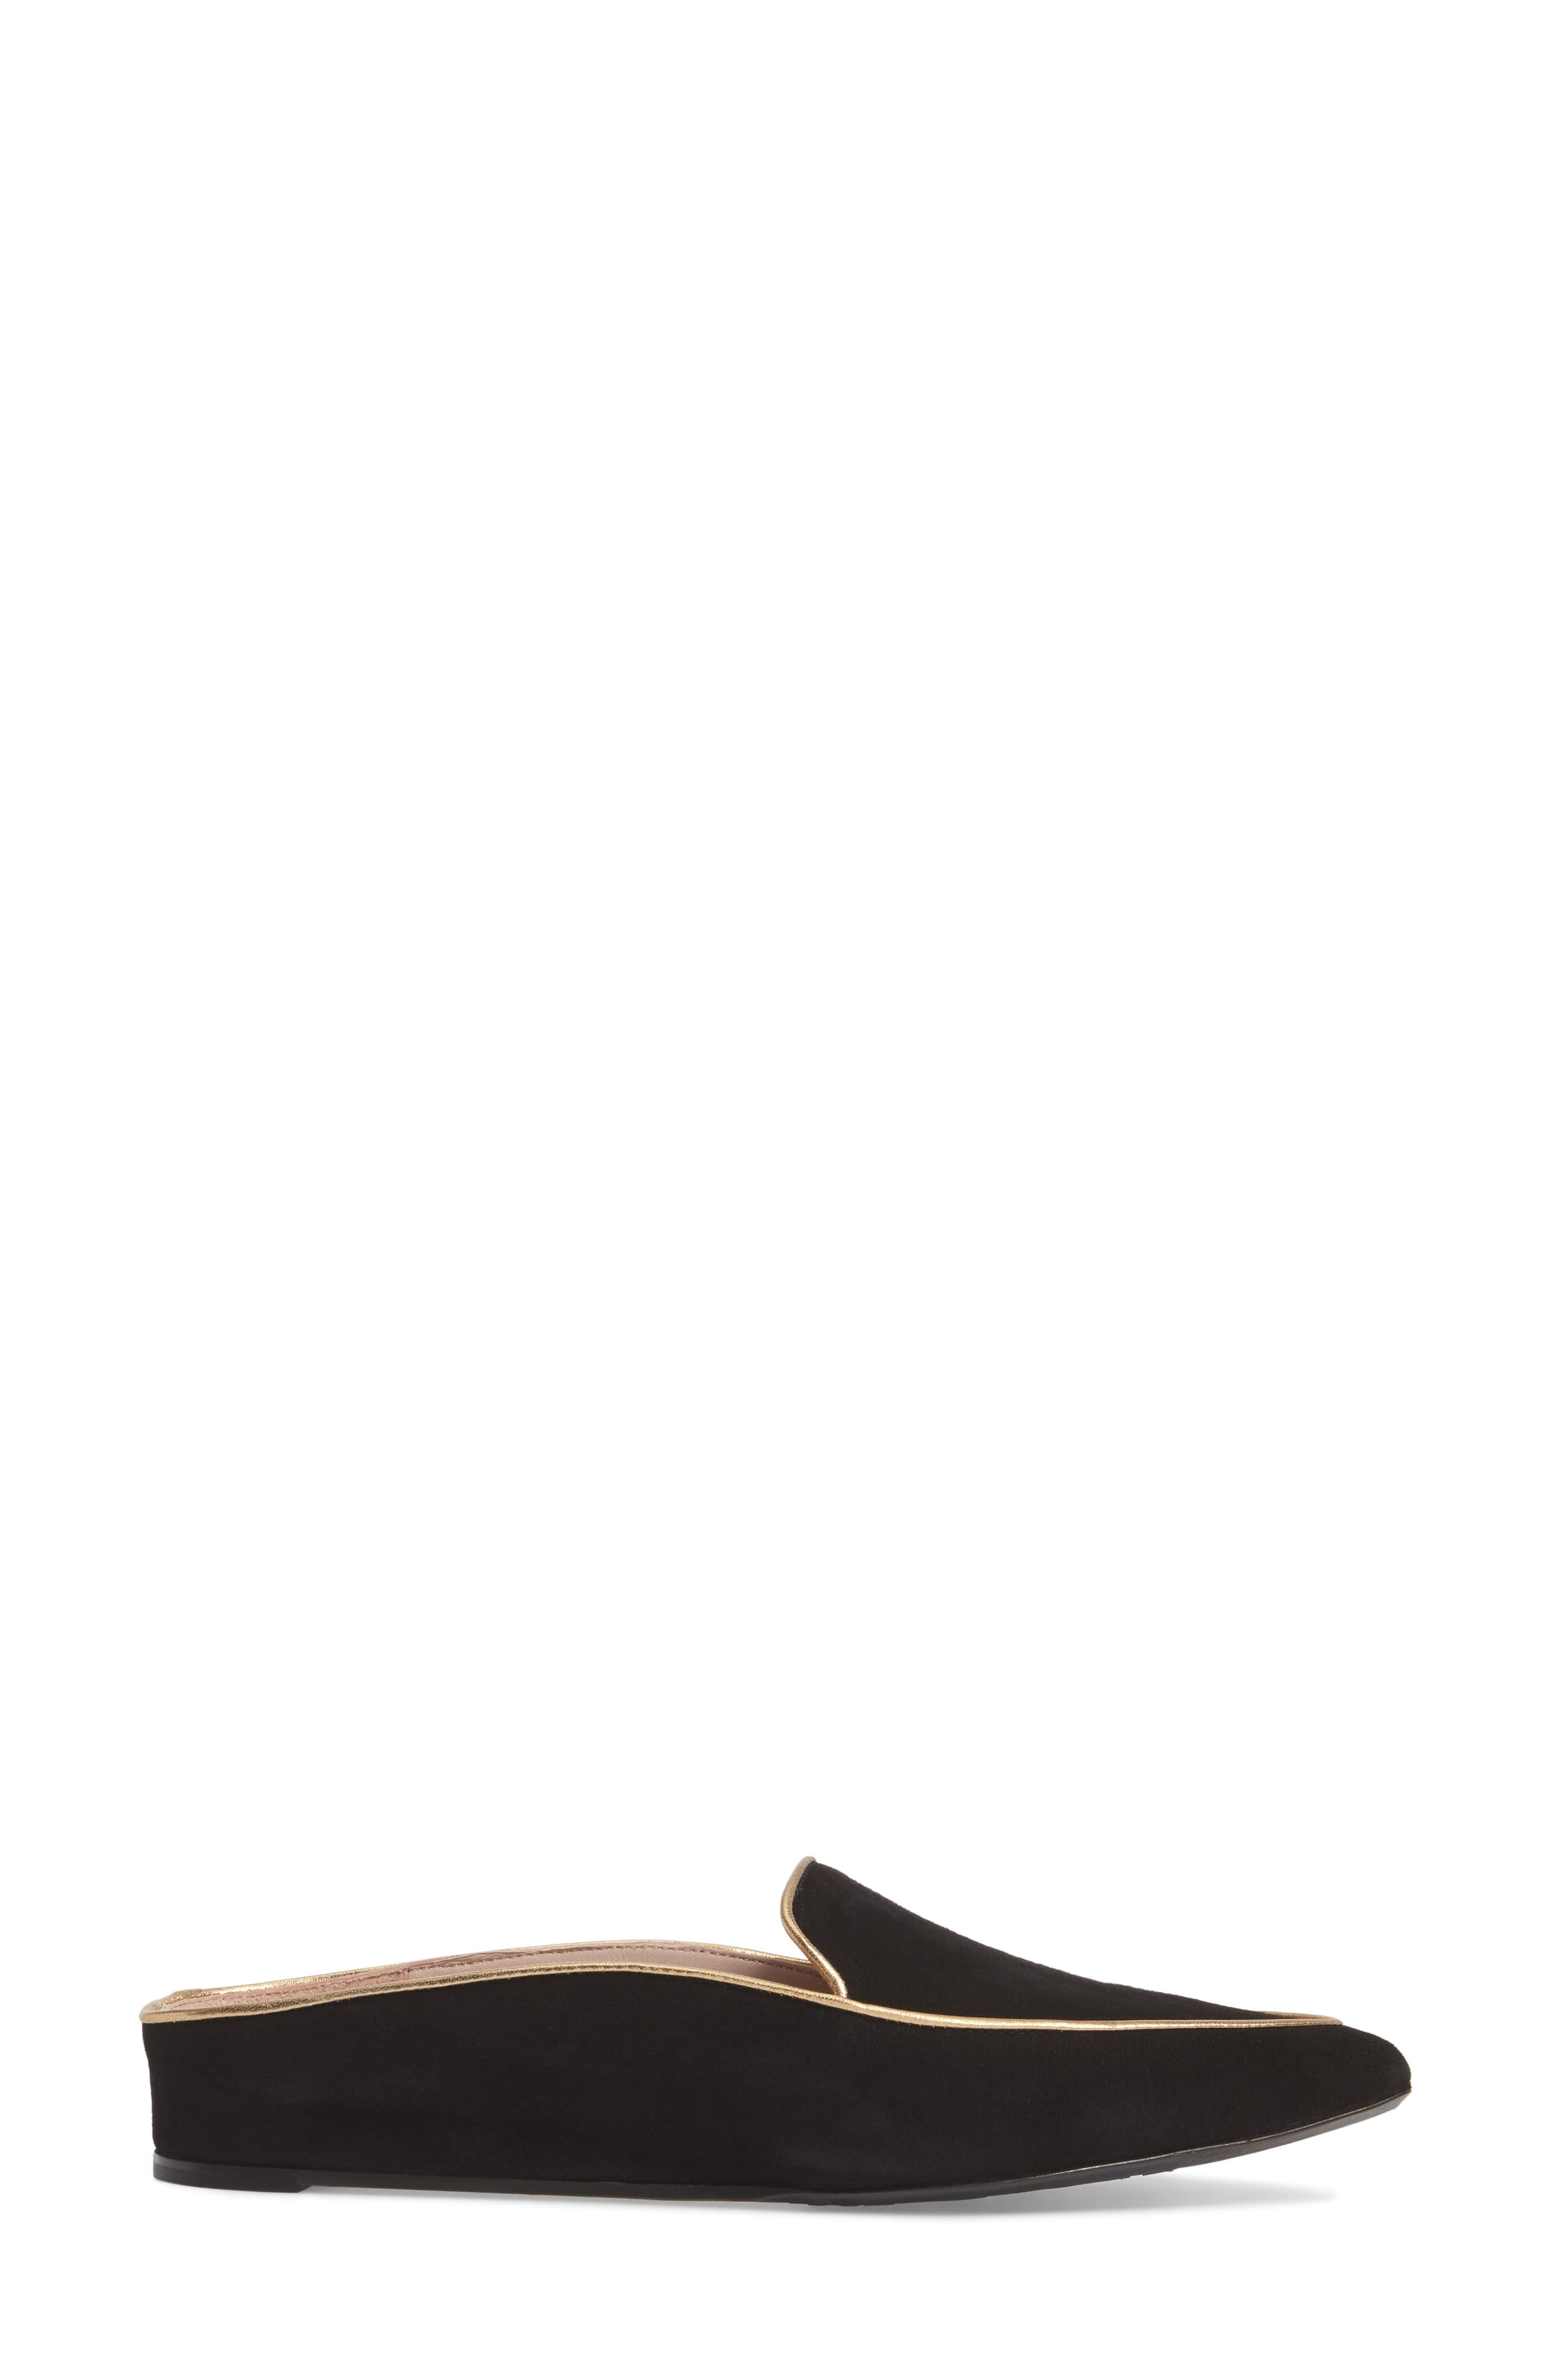 Taryn Rose Renatta Mule,                             Alternate thumbnail 3, color,                             004